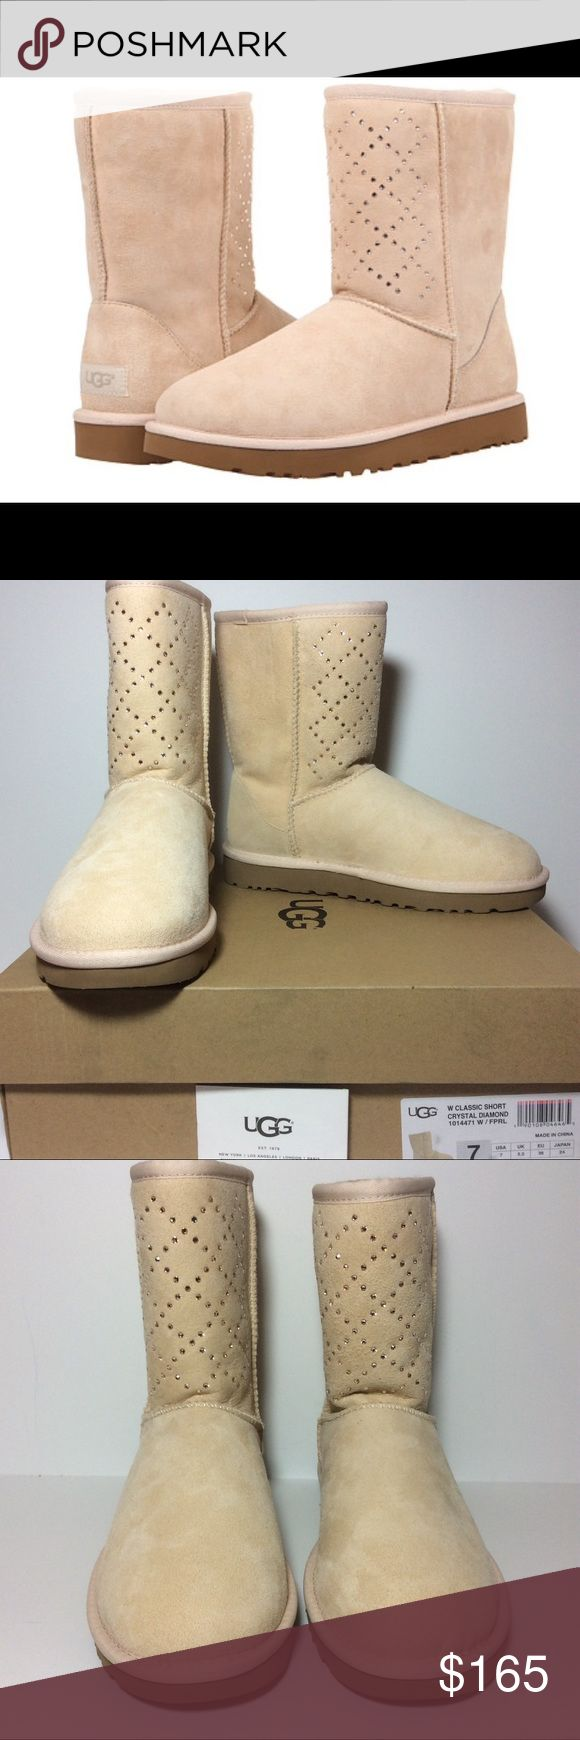 NIB UGG Classic Short Crystal Diamond Boot Pearl 7 NIB $265 UGG® Classic Short Crystal Diamond Boot Freshwater Pearl Sz 7  Original surf boot boasts genuine twin-faced sheepskin and embellished with diamond patterned SWAROVSKI® crystal motif.  Fully lined in luxurious, UGGpure™ wool. UGGpure delivers a plush sensory experience with every wear.  Generously cushioned footbed is lined in UGGpure™ wool for breathability and warmth. Heel Height: 1 in Circumference: 14 in Shaft: 8 in Platform…